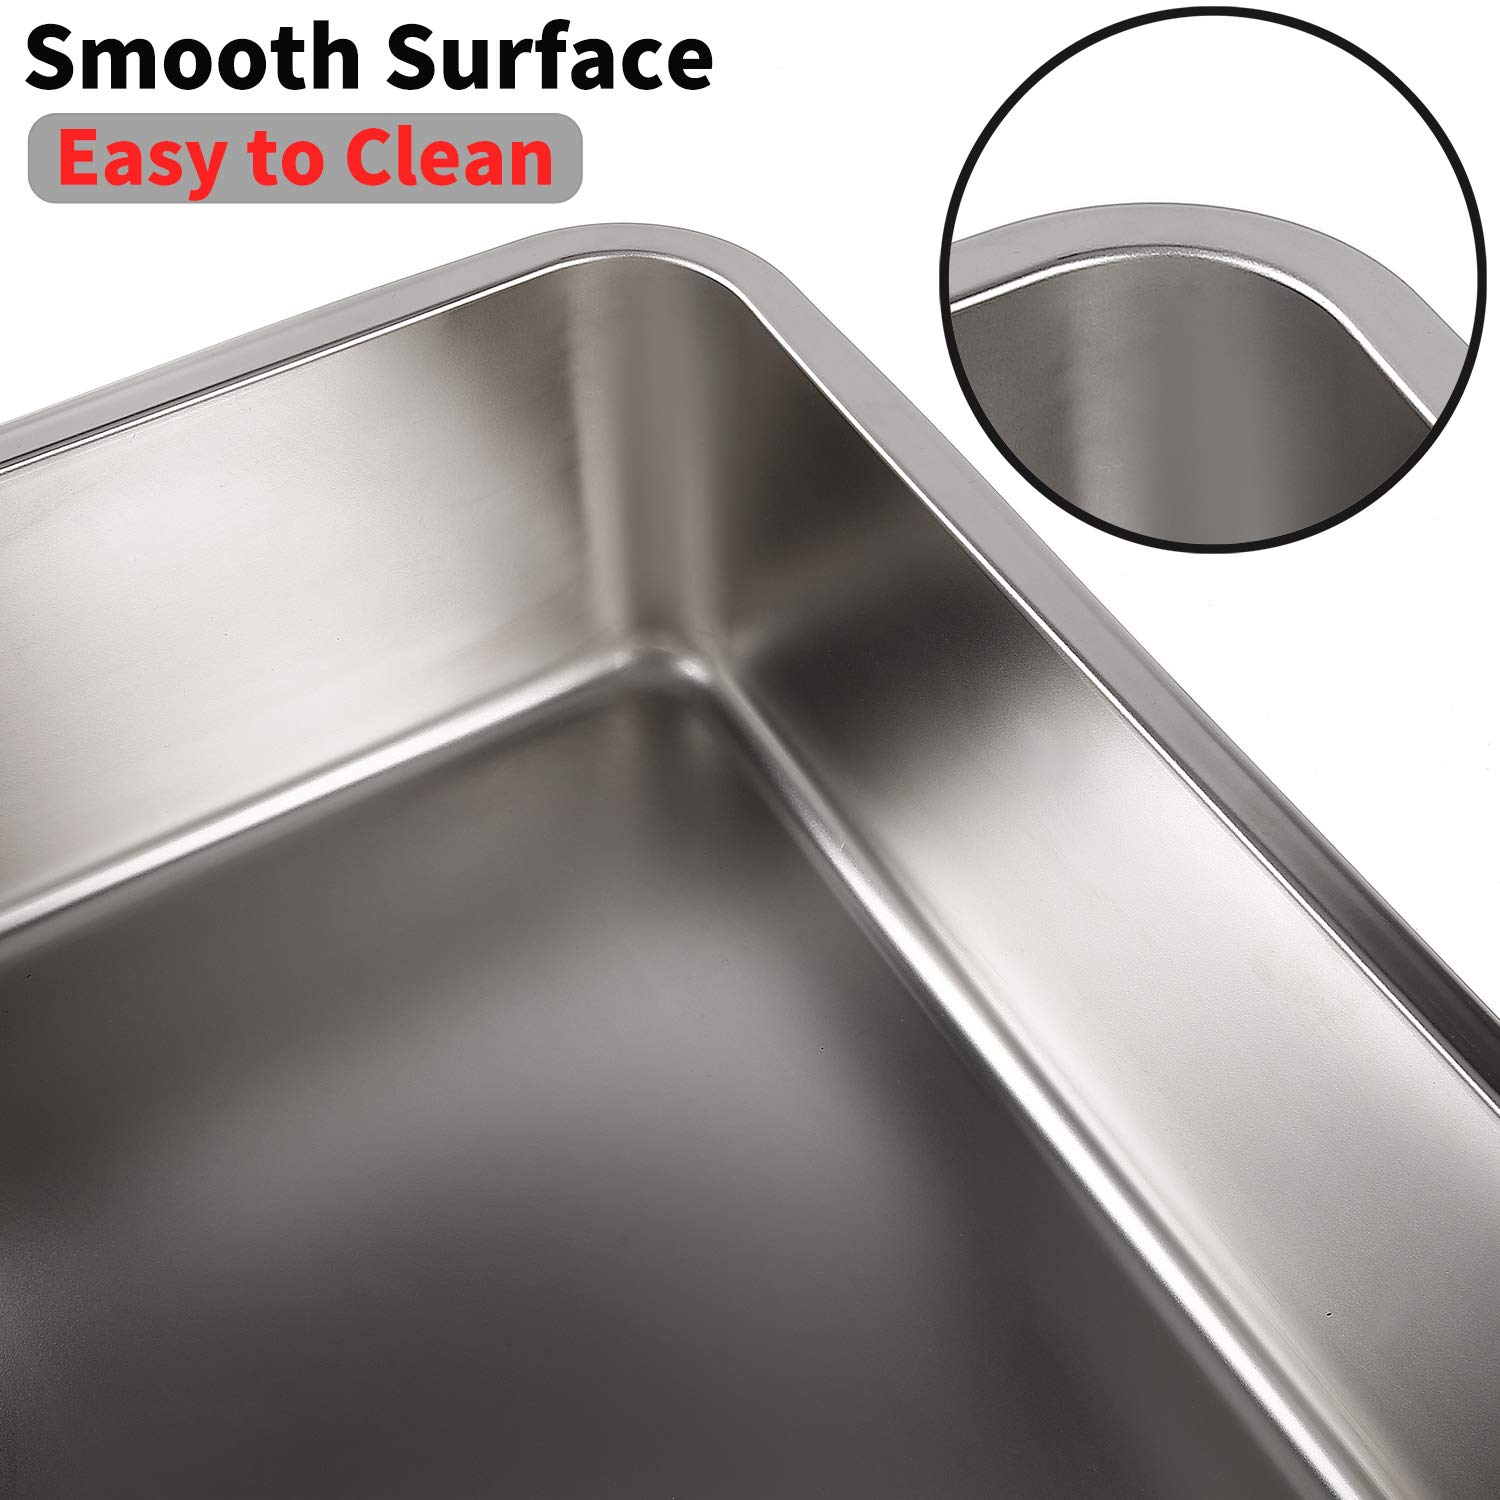 Amazon.com : Yangbaga Stainless Steel Litter Box for Cat and Rabbit, Odor Control Litter Pan, Non Stick Smooth Surface, Easy to Clean, Never Bend, ...